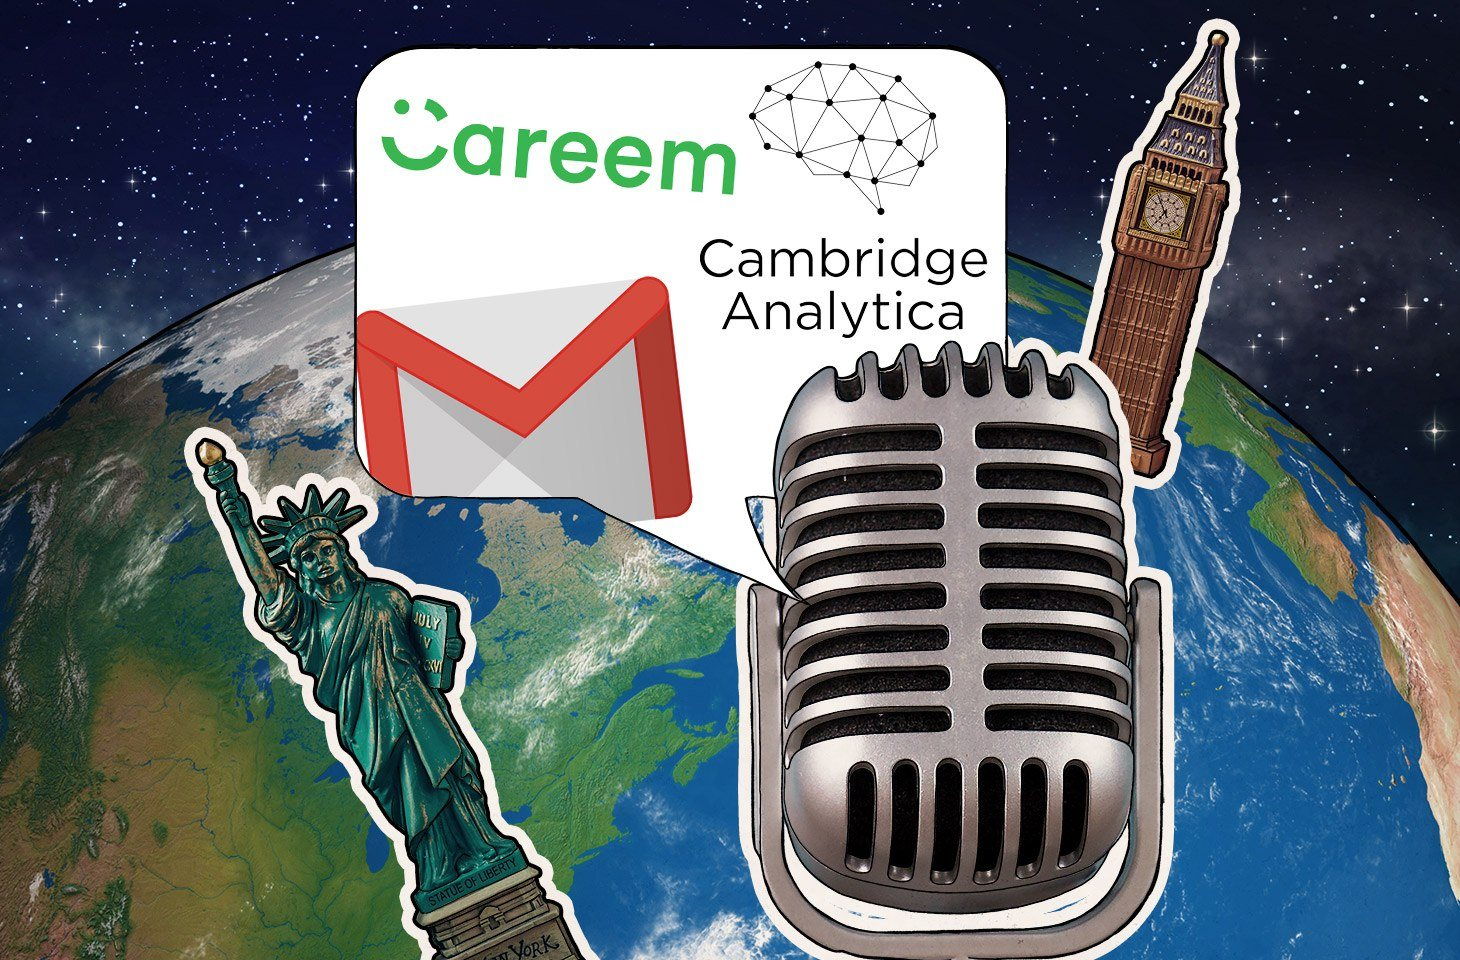 Jeff and Ahmed discuss privacy online, the latest on Cambridge Analytica, and more.